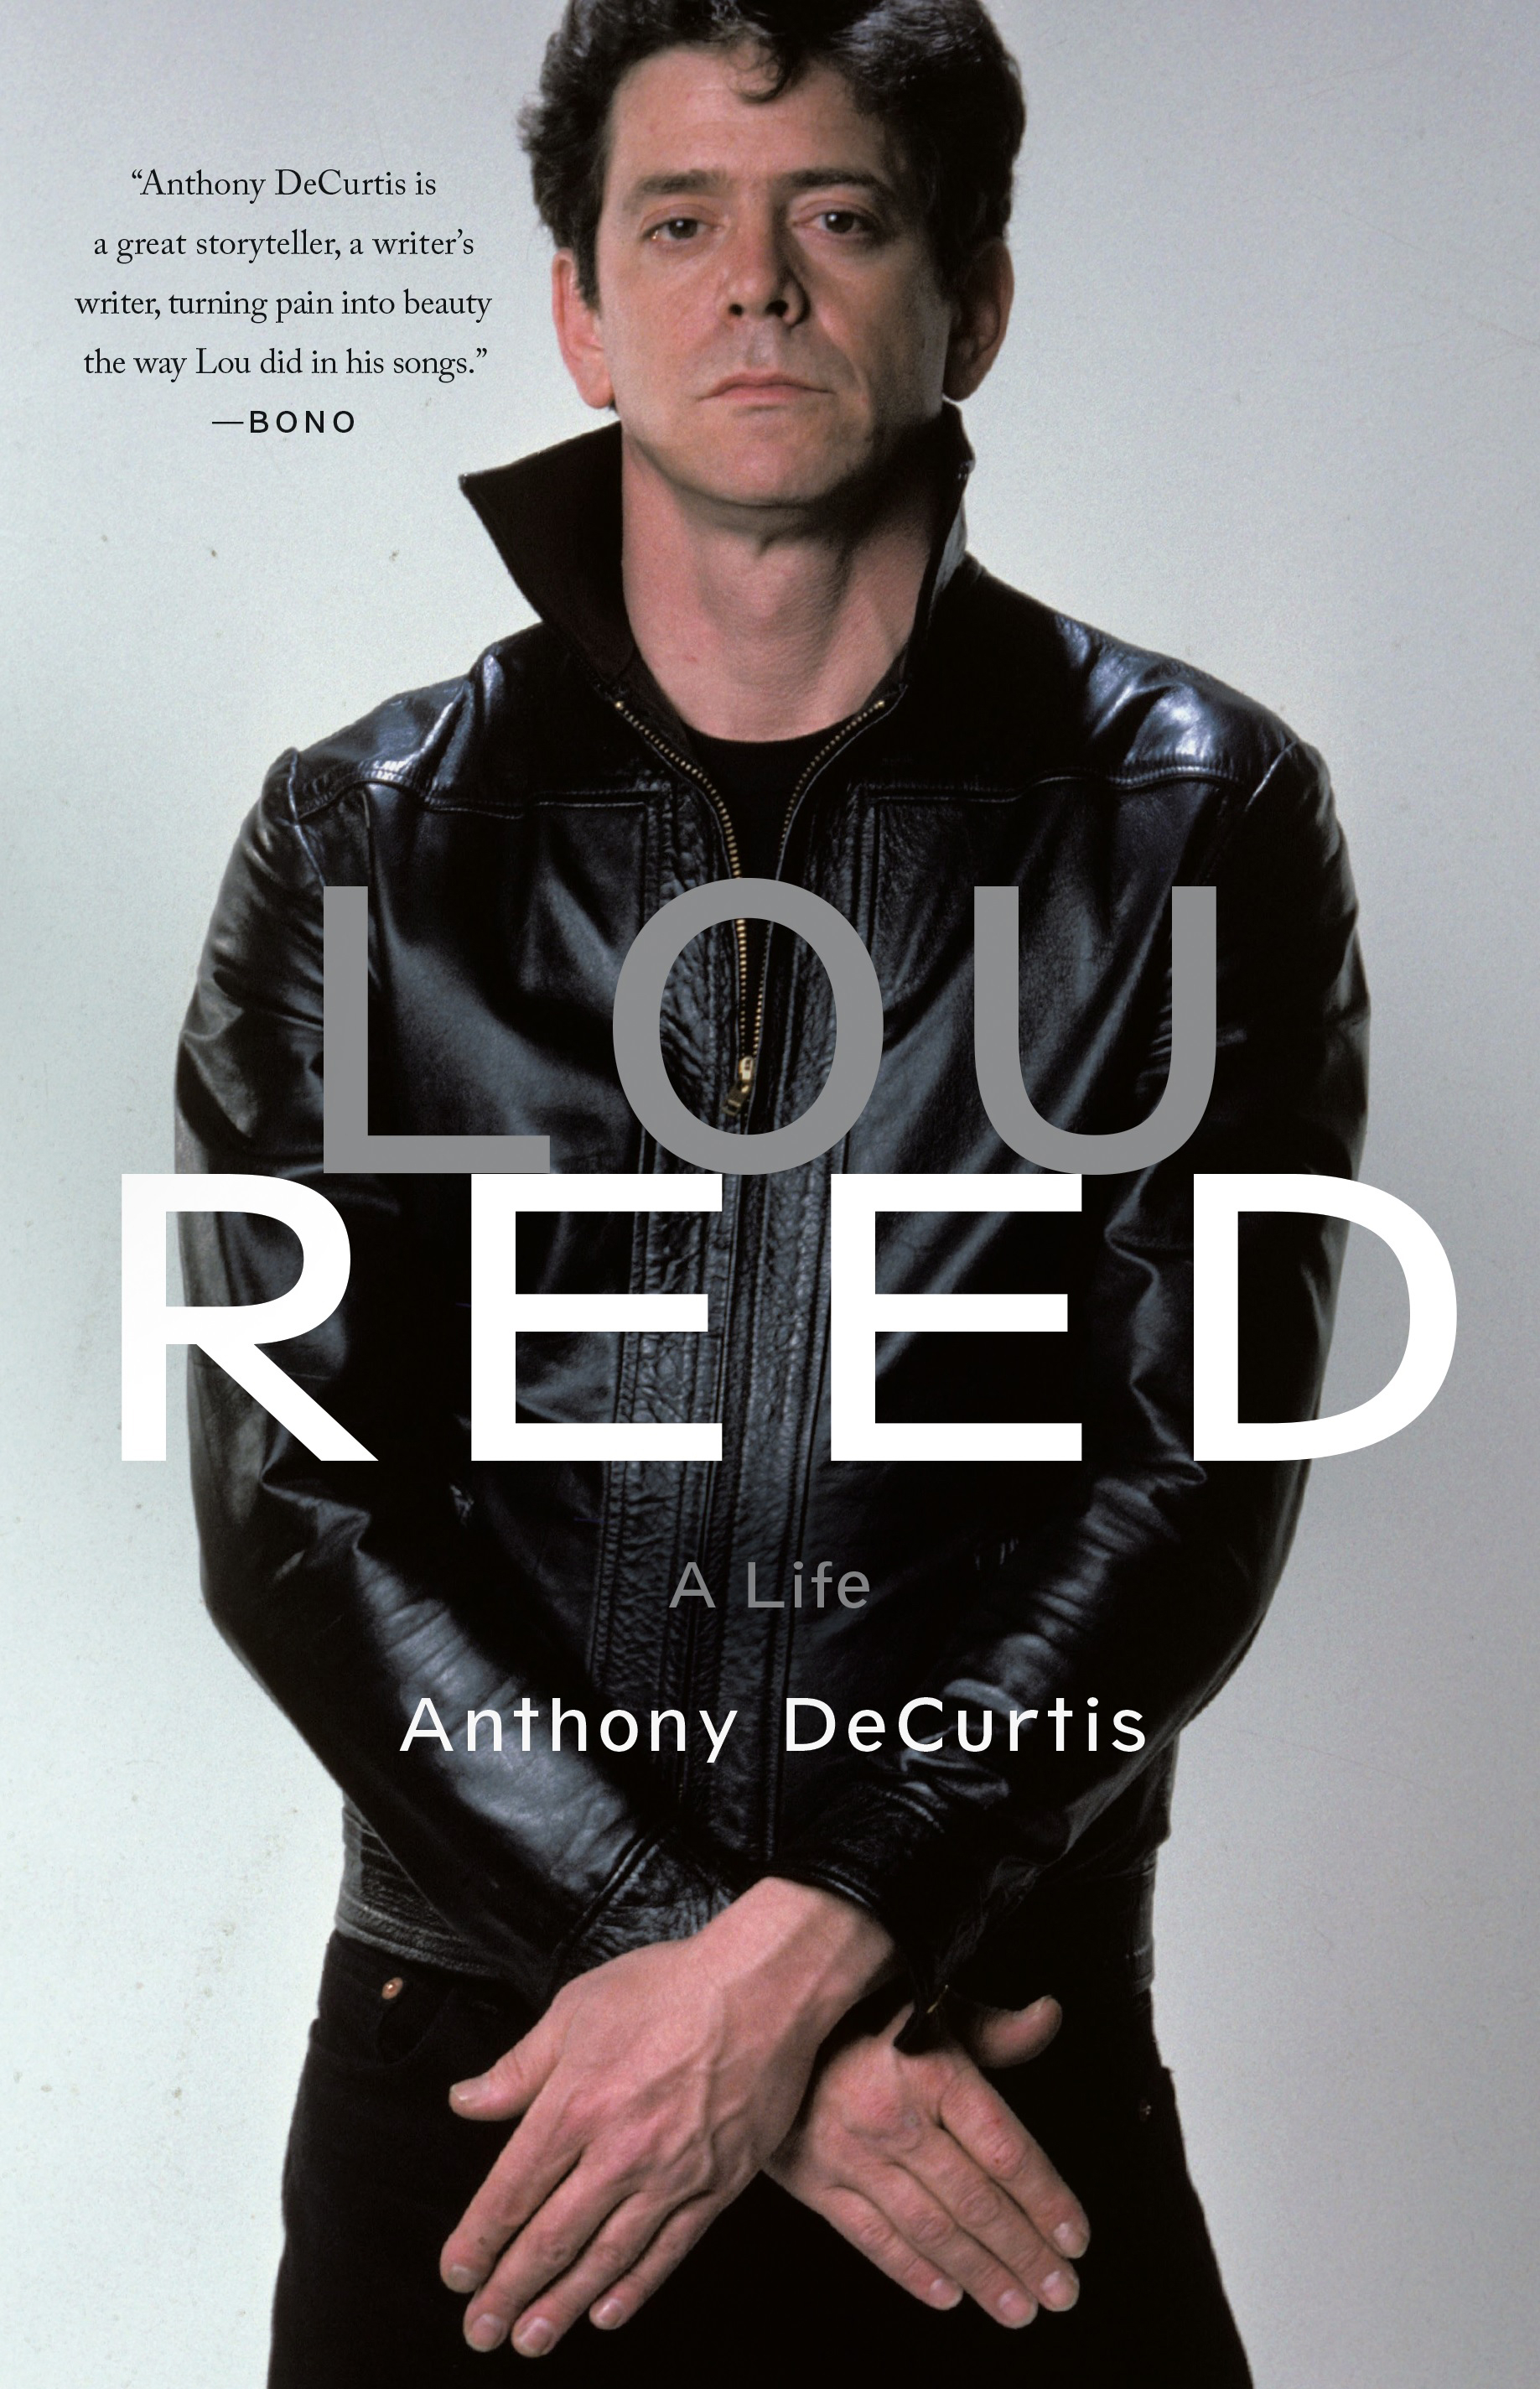 Lou Reed Biography Excerpt Birth of the Velvet Underground